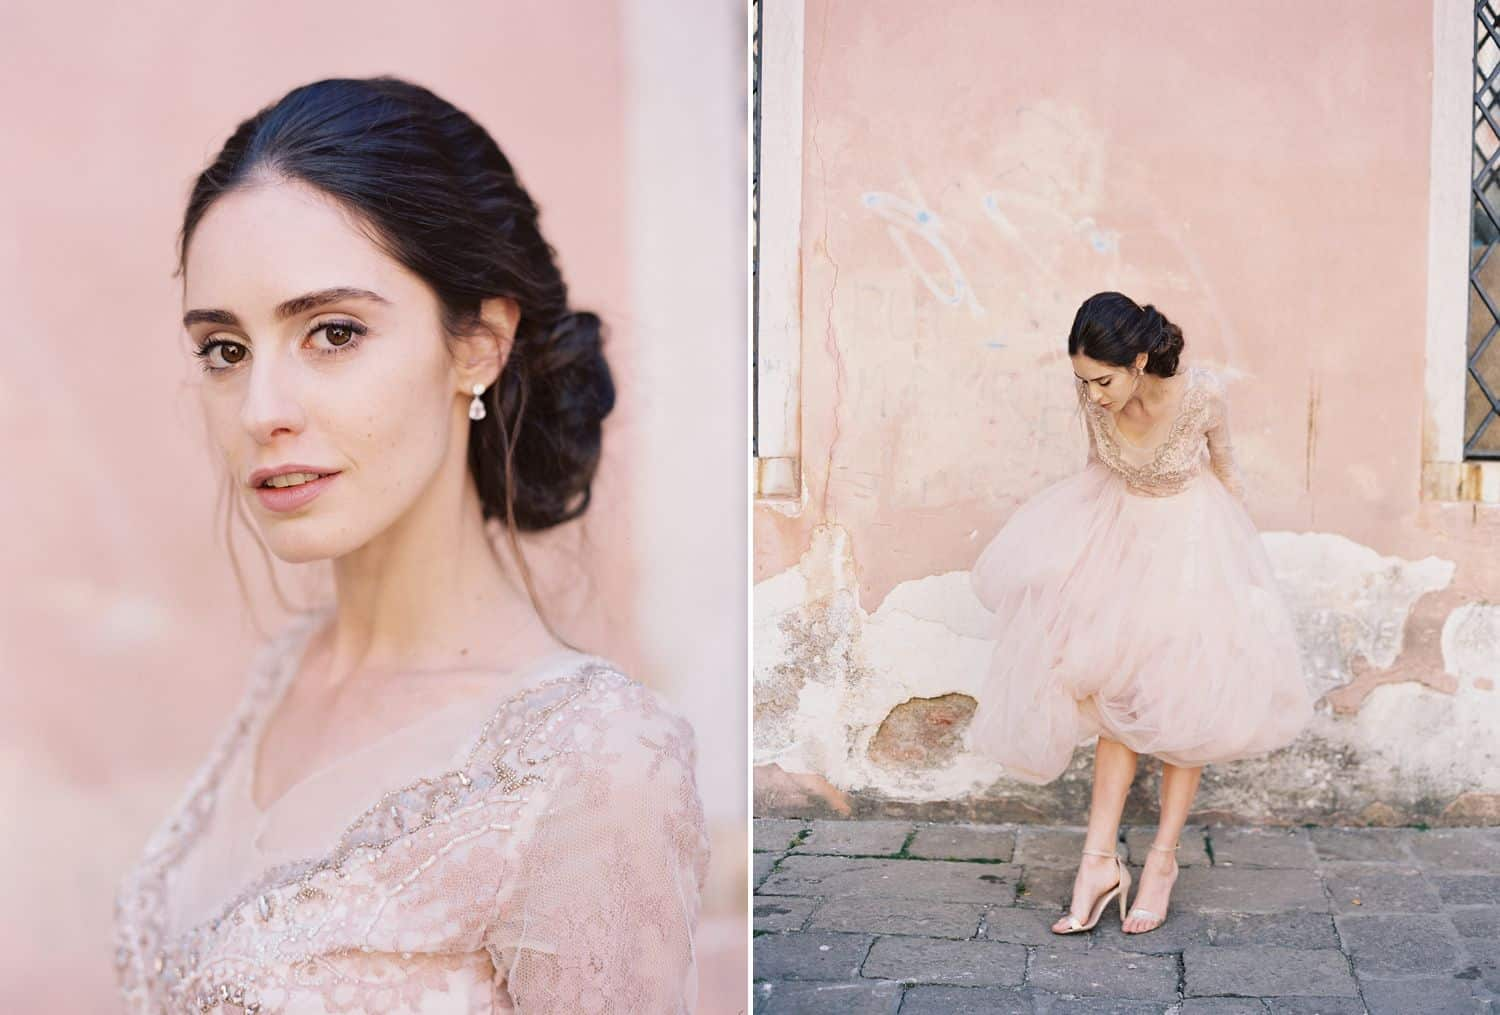 A brunette bride wears a pink wedding gown and her hair in a chignon. She poses before a pink wall.